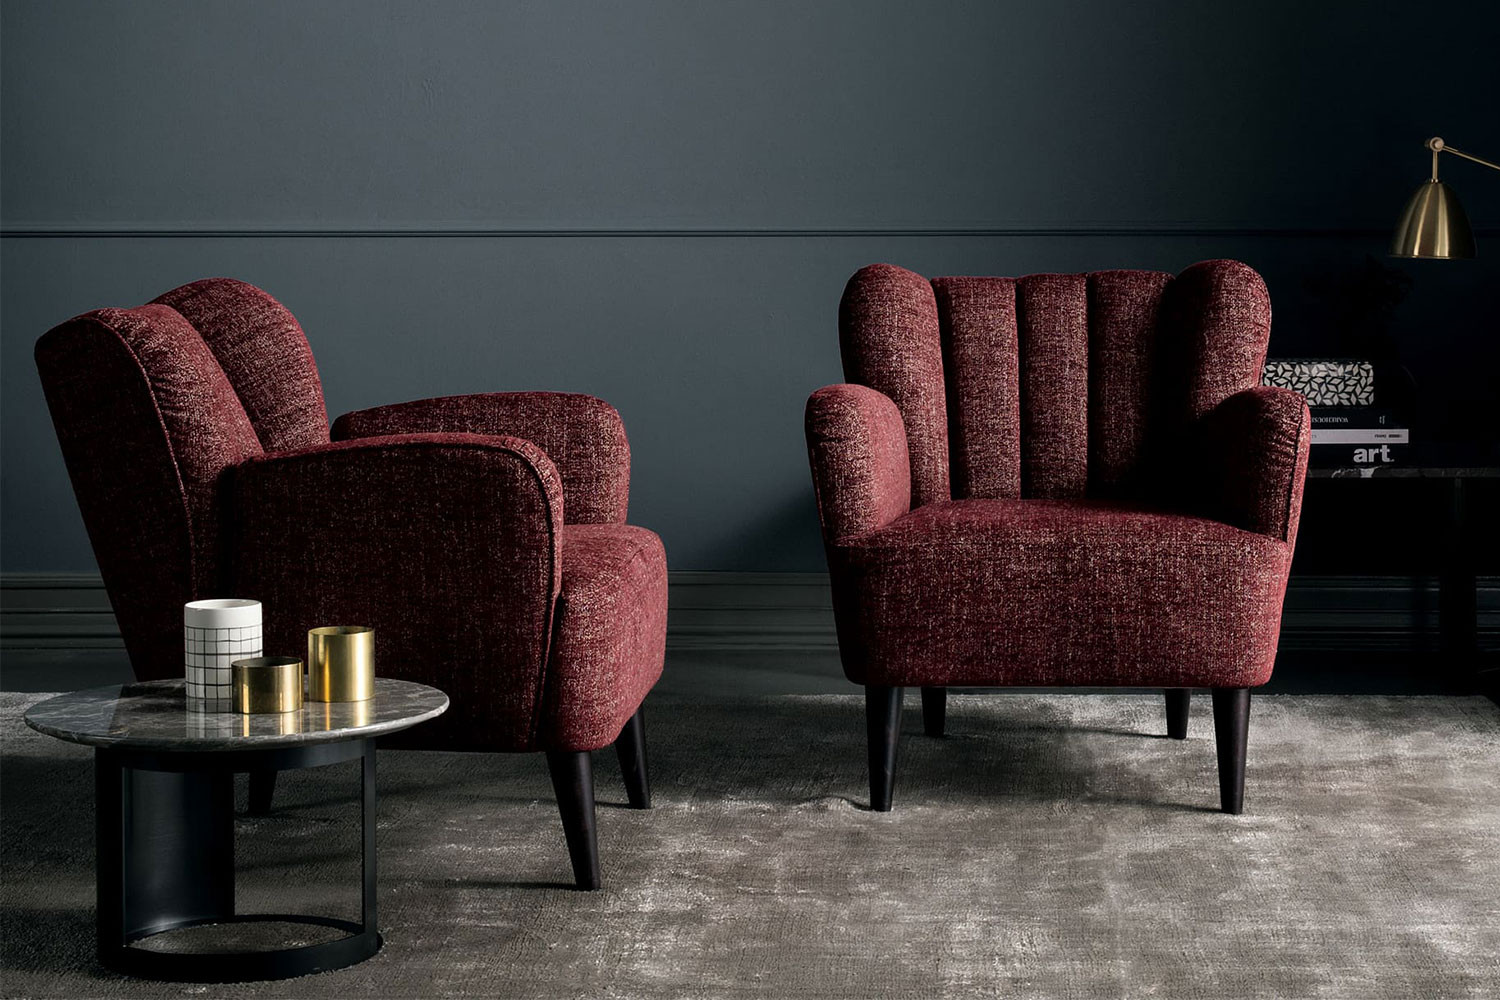 Stylish art-deco inspired scalloped cocktail chairs with wooden legs